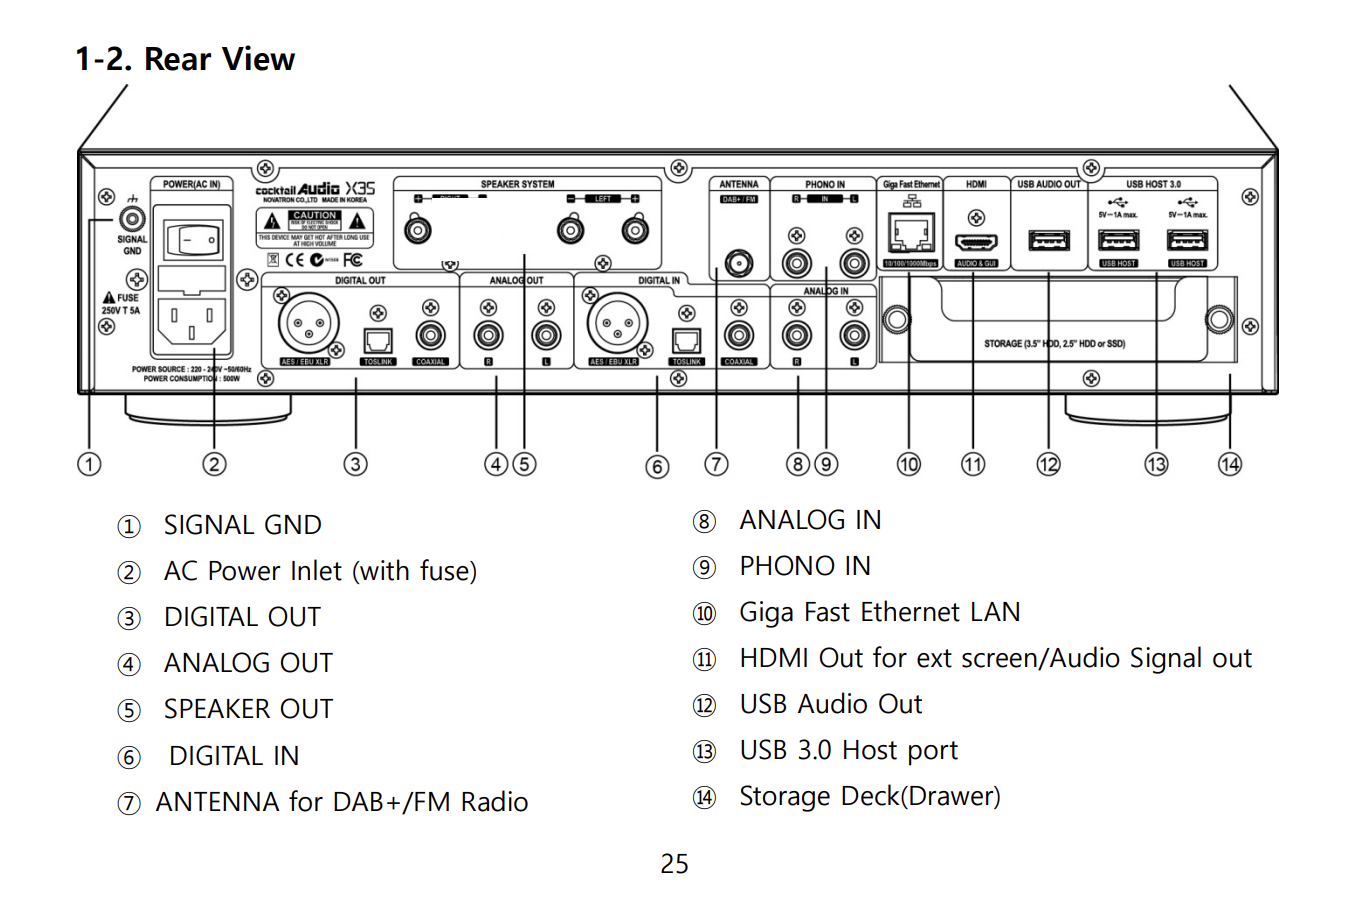 X35 REAR INPUTS/OUTPUTS